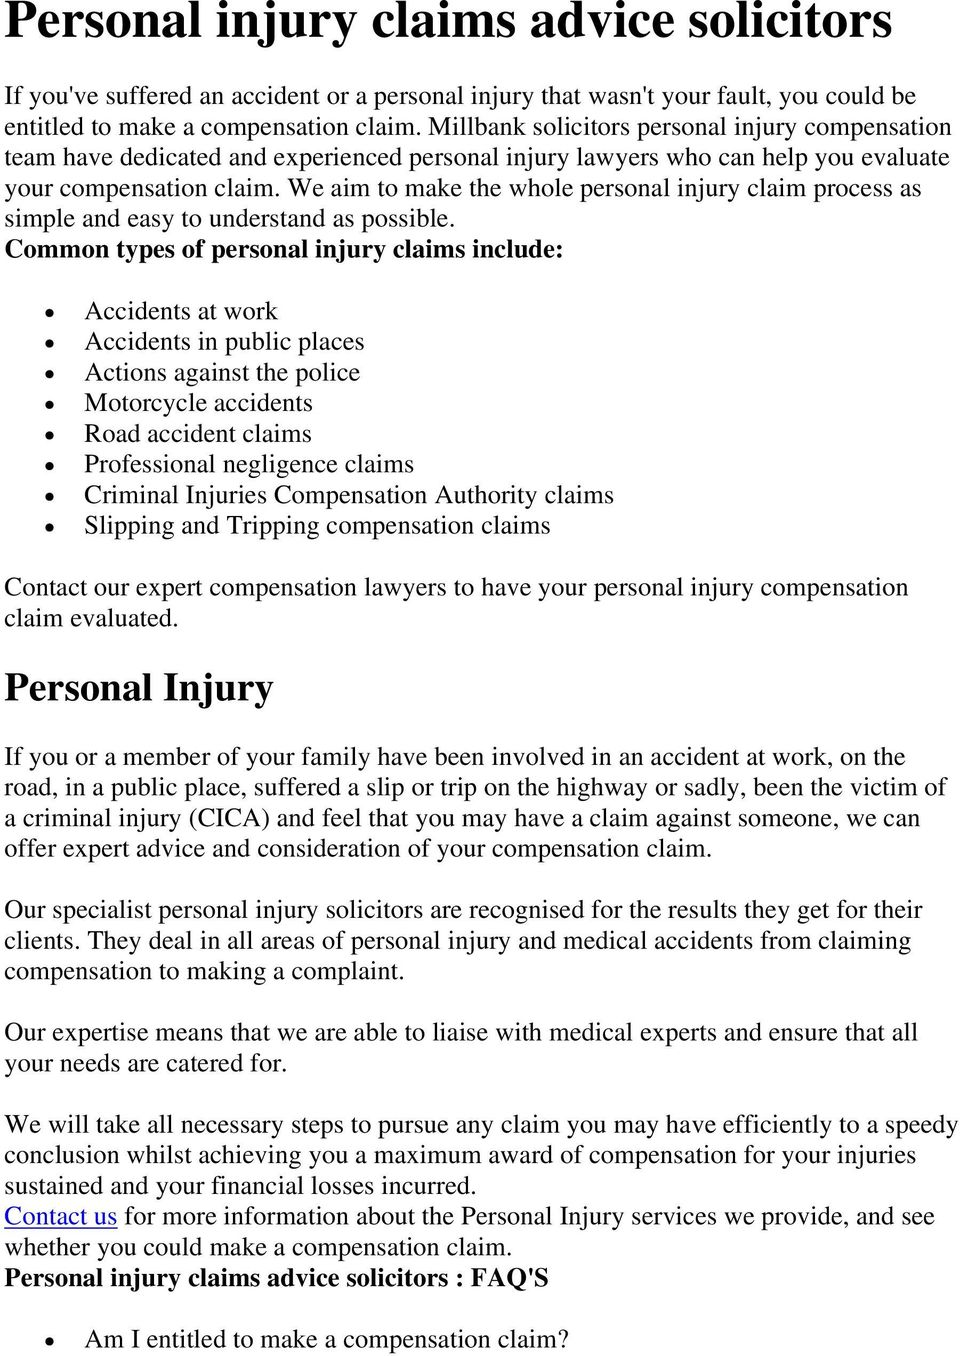 We aim to make the whole personal injury claim process as simple and easy to understand as possible.